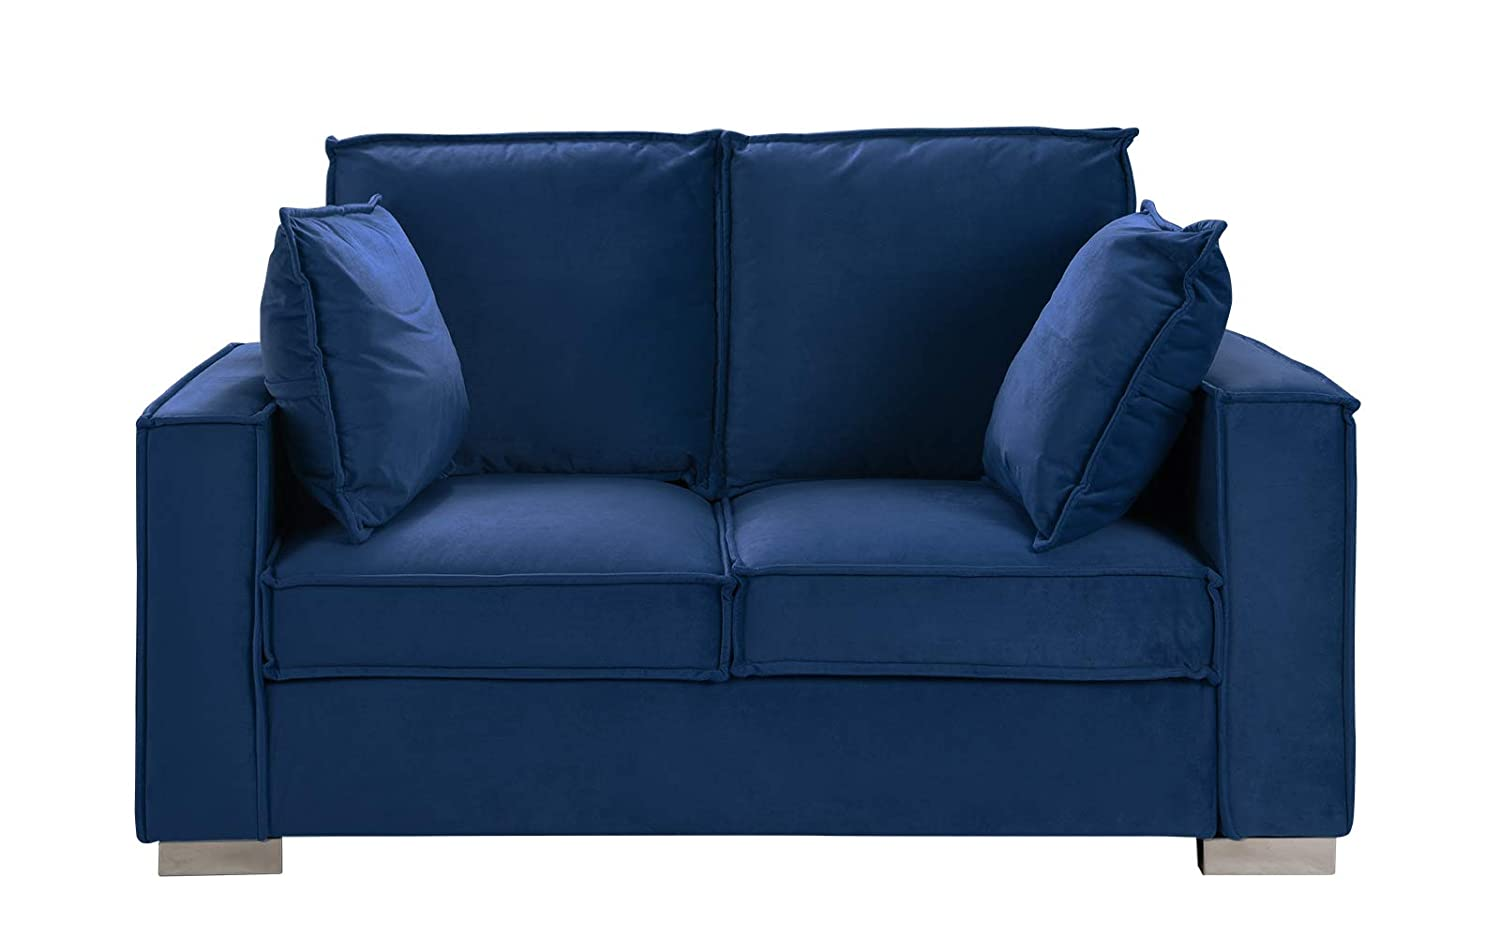 Pleasant Classic Brush Microfiber Sofa Small Space Loveseat Couch Navy Blue Onthecornerstone Fun Painted Chair Ideas Images Onthecornerstoneorg